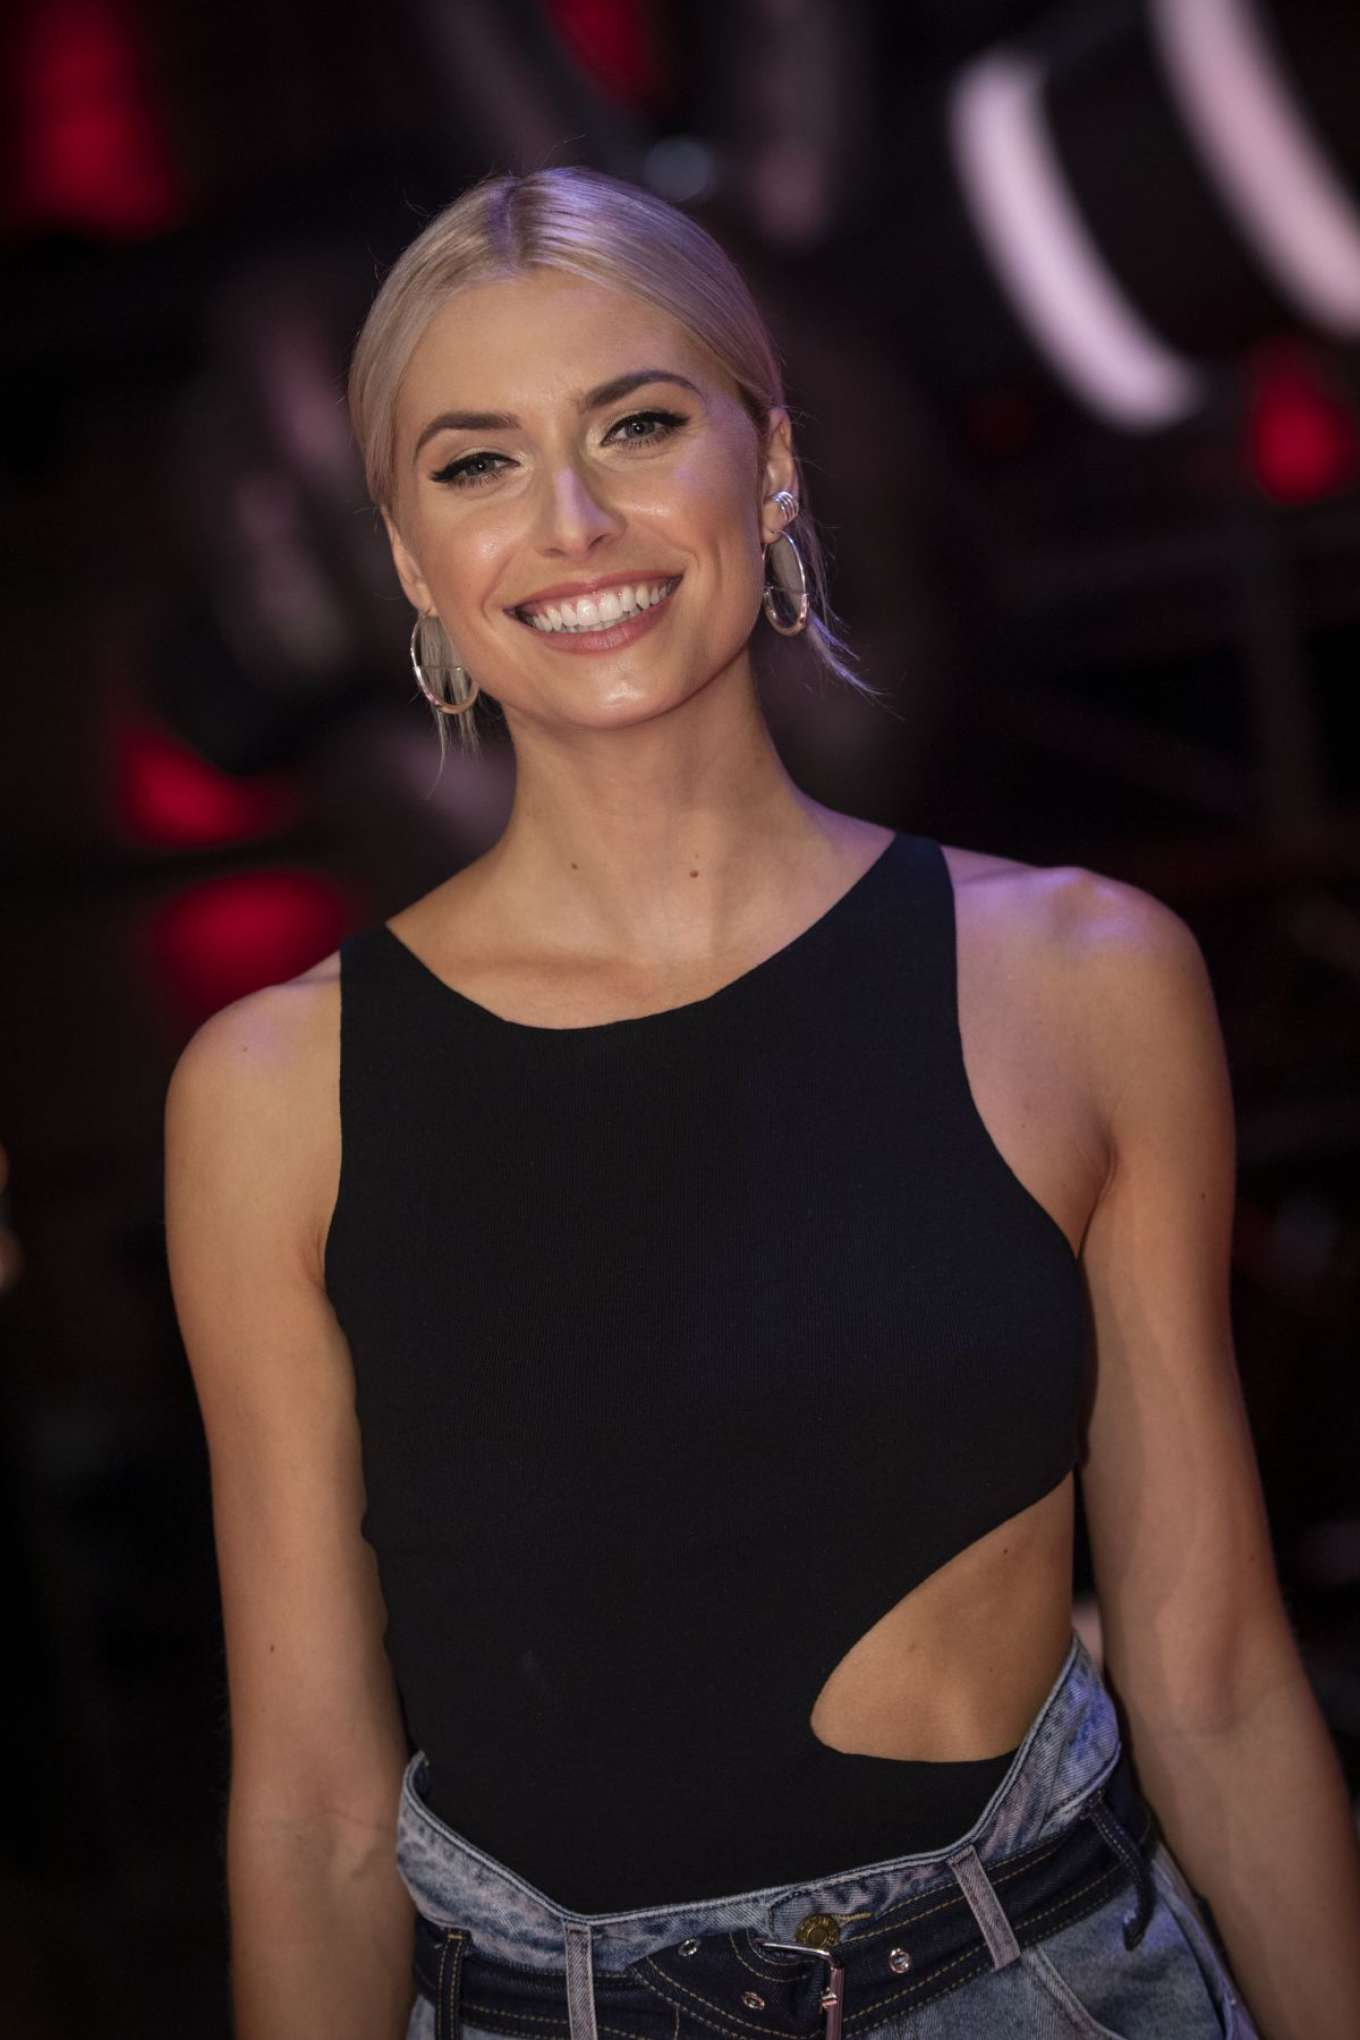 Lena Gercke 2019 : Lena Gercke – The Voice of Germany Promos-04